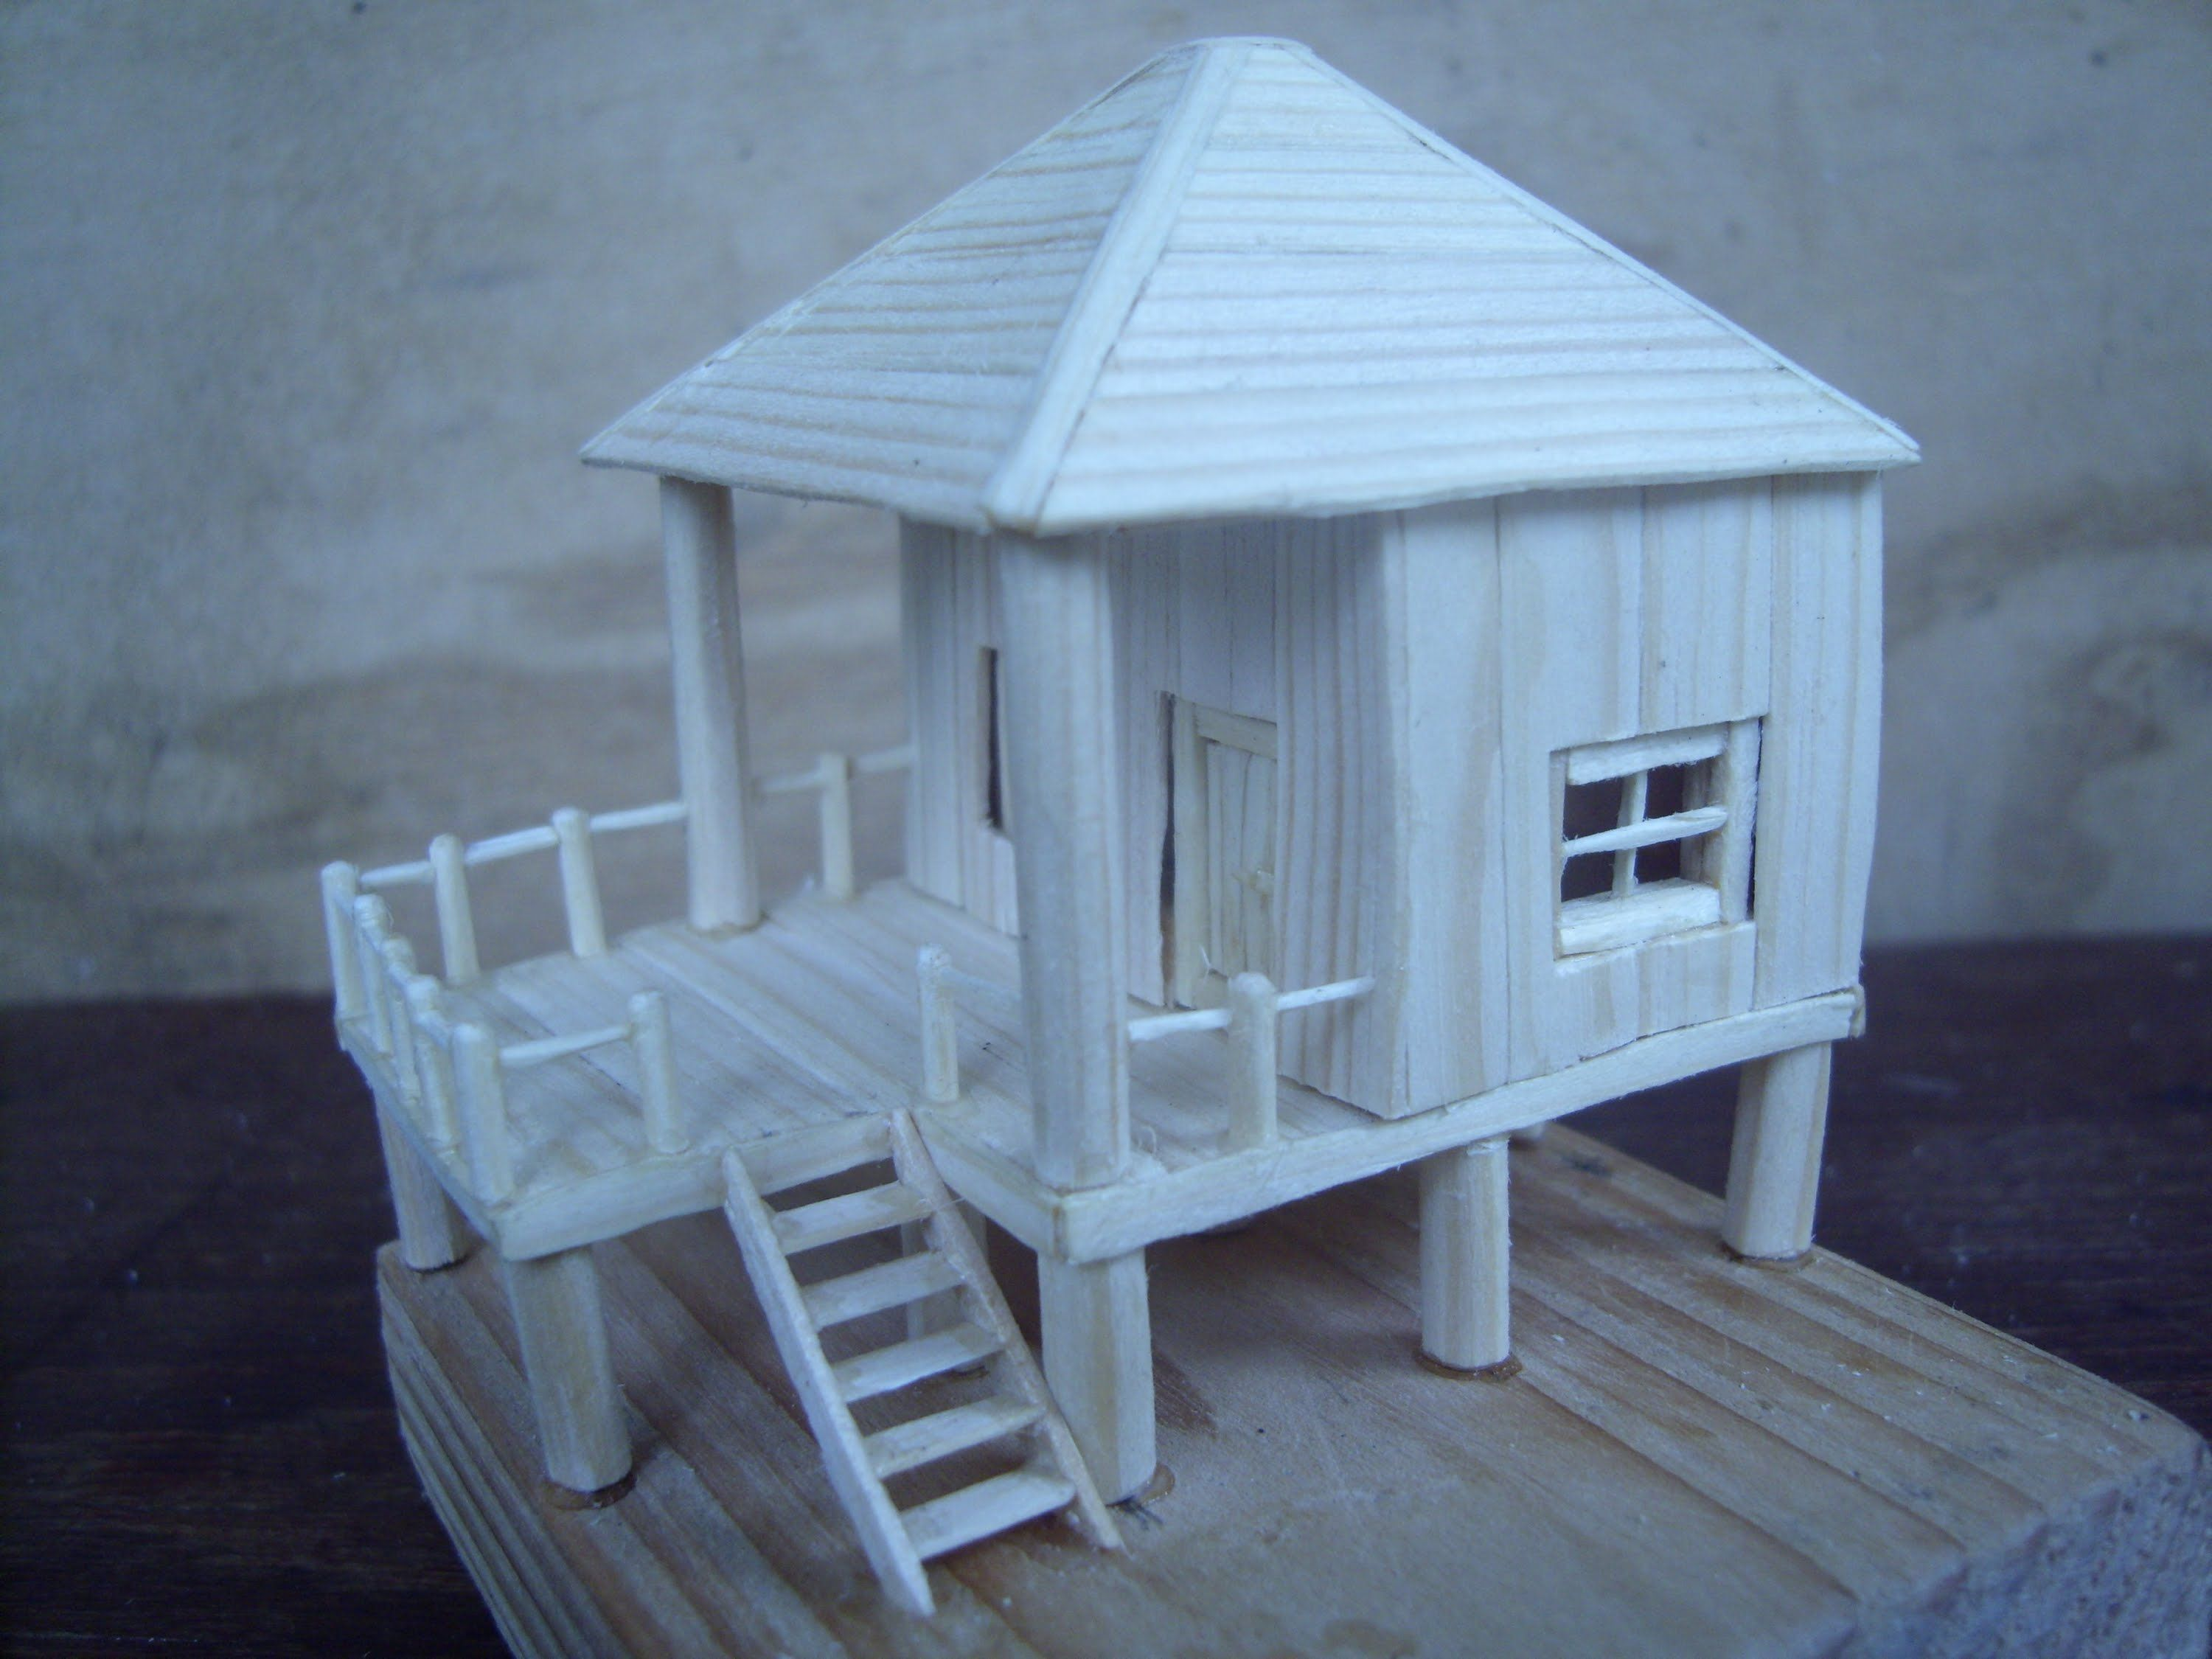 ... How To Make Popsicle Stick House Yutorial Watch Share And Learn Video  Tutorials · Stilt House Google Search ...